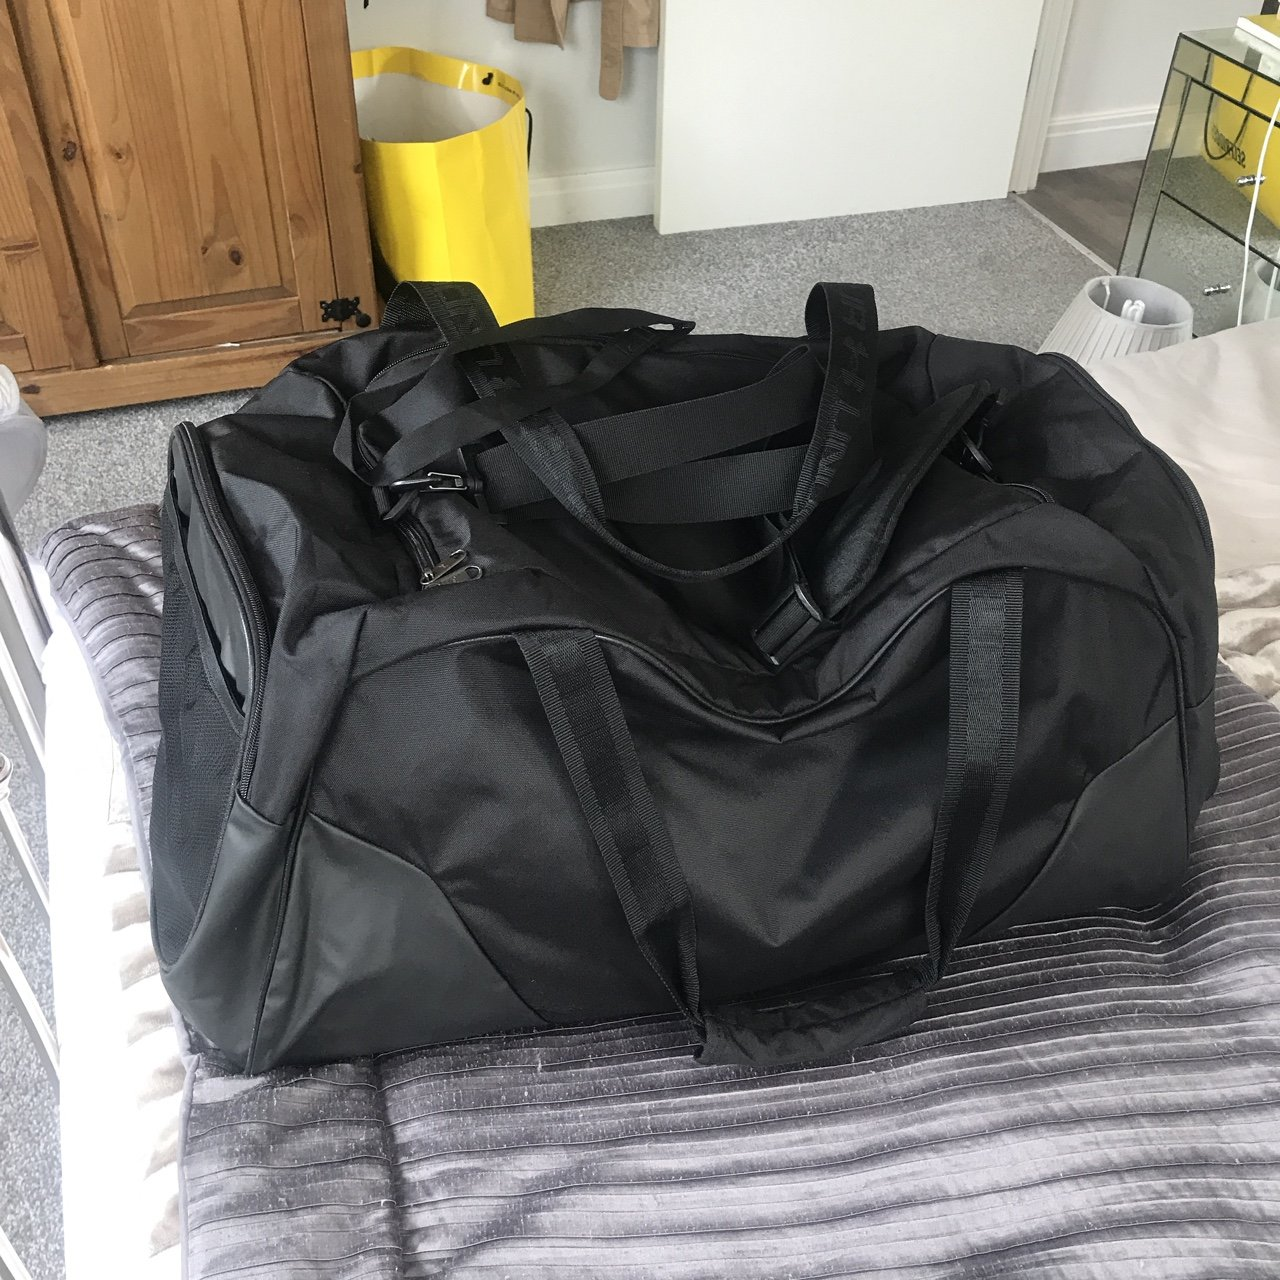 320febcb4ab7 Never been used BRAND NEW under armour huge gym duffle bag